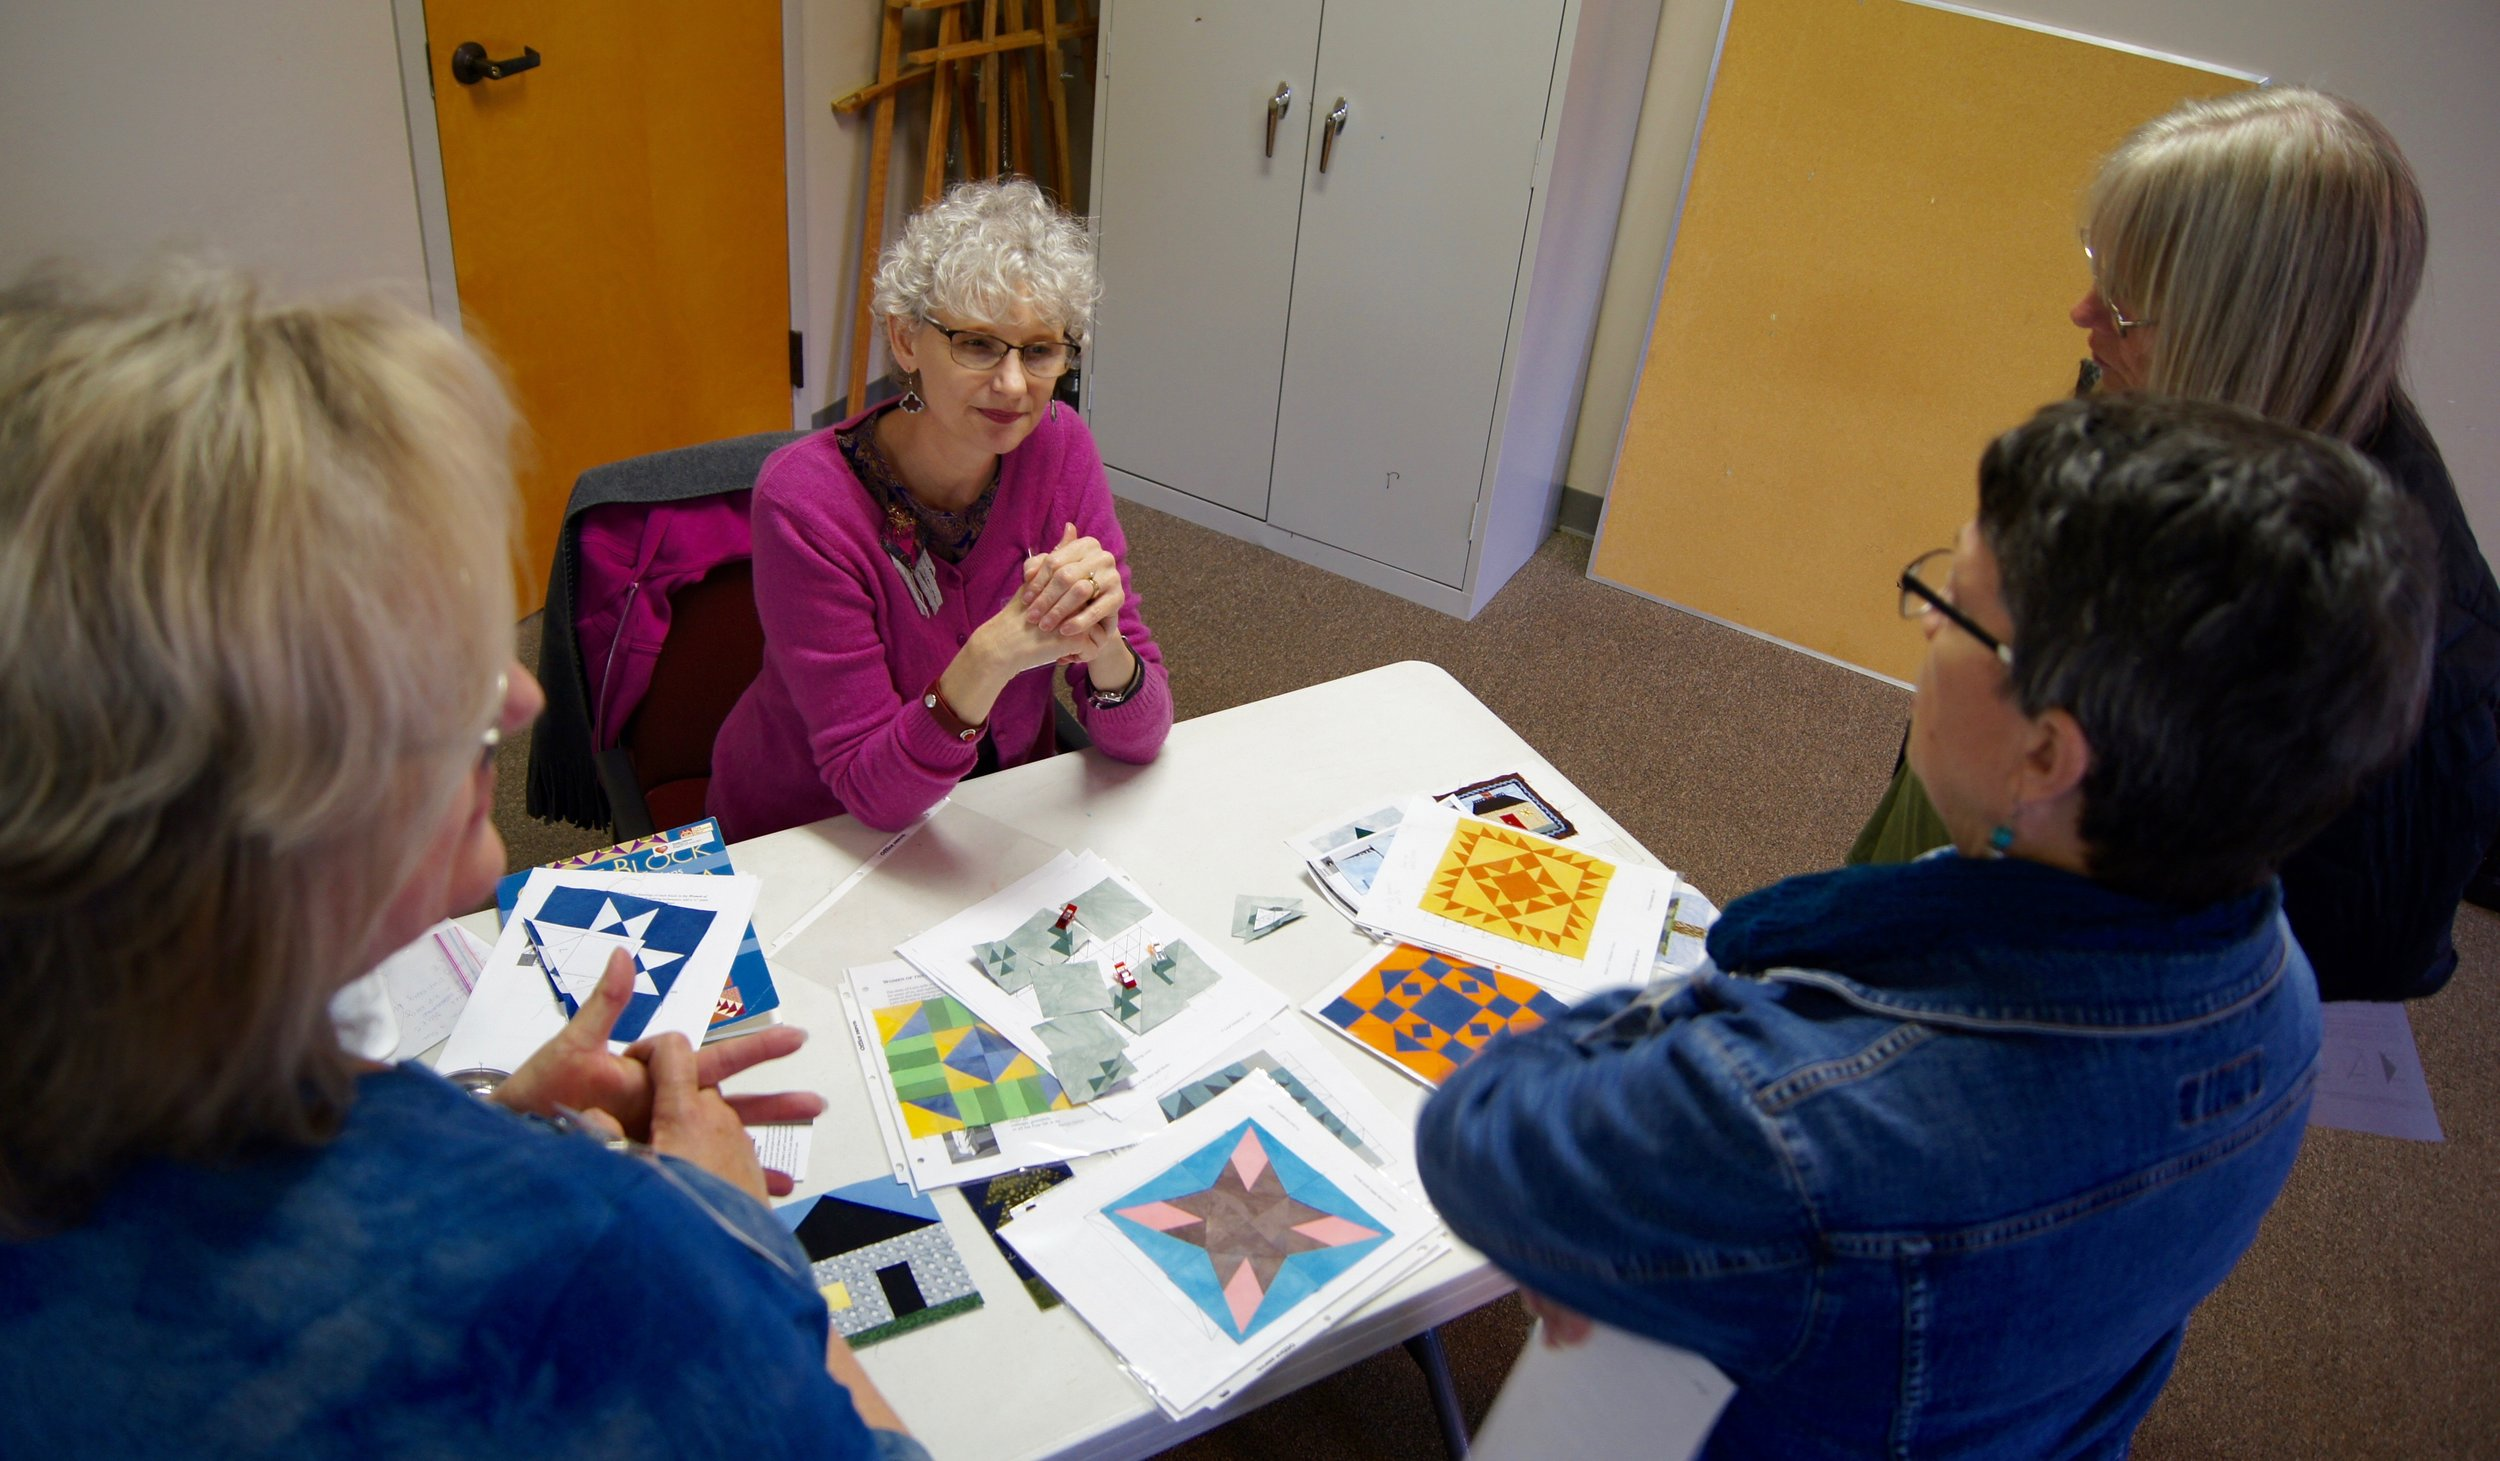 Denise Ohlman showed members several examples of complex paper piecing patterns.